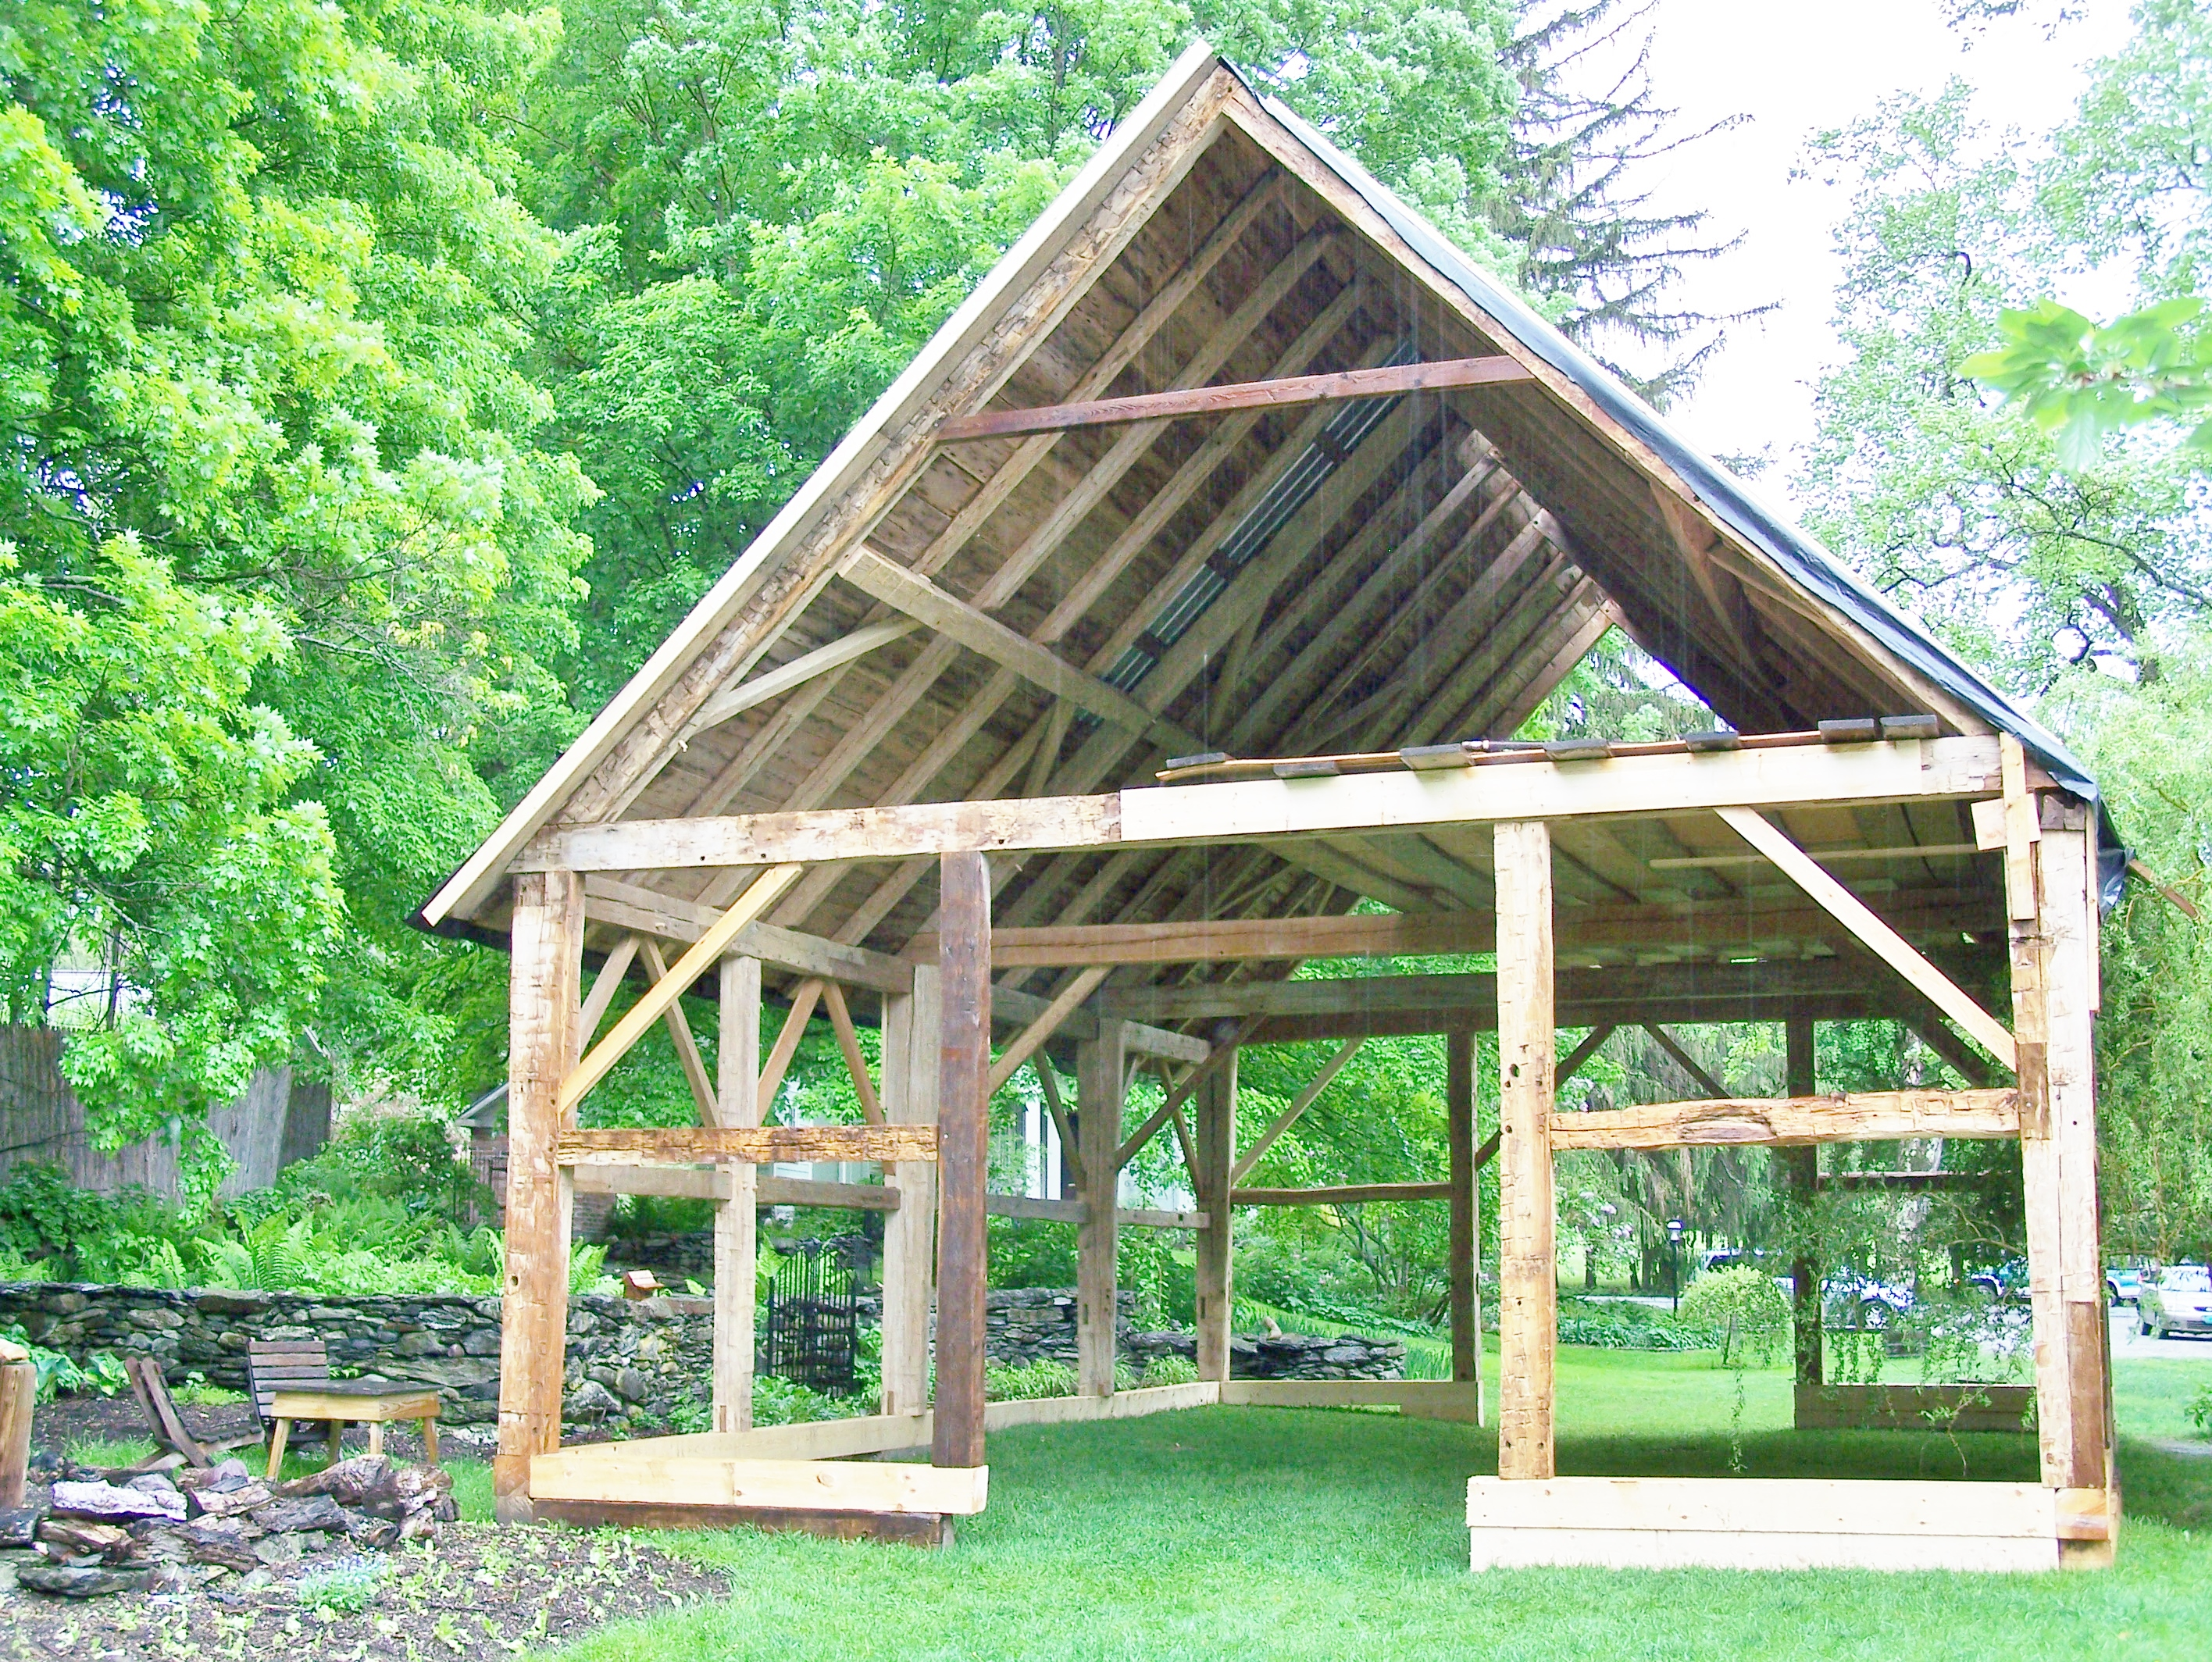 timber frame barn - photo #39